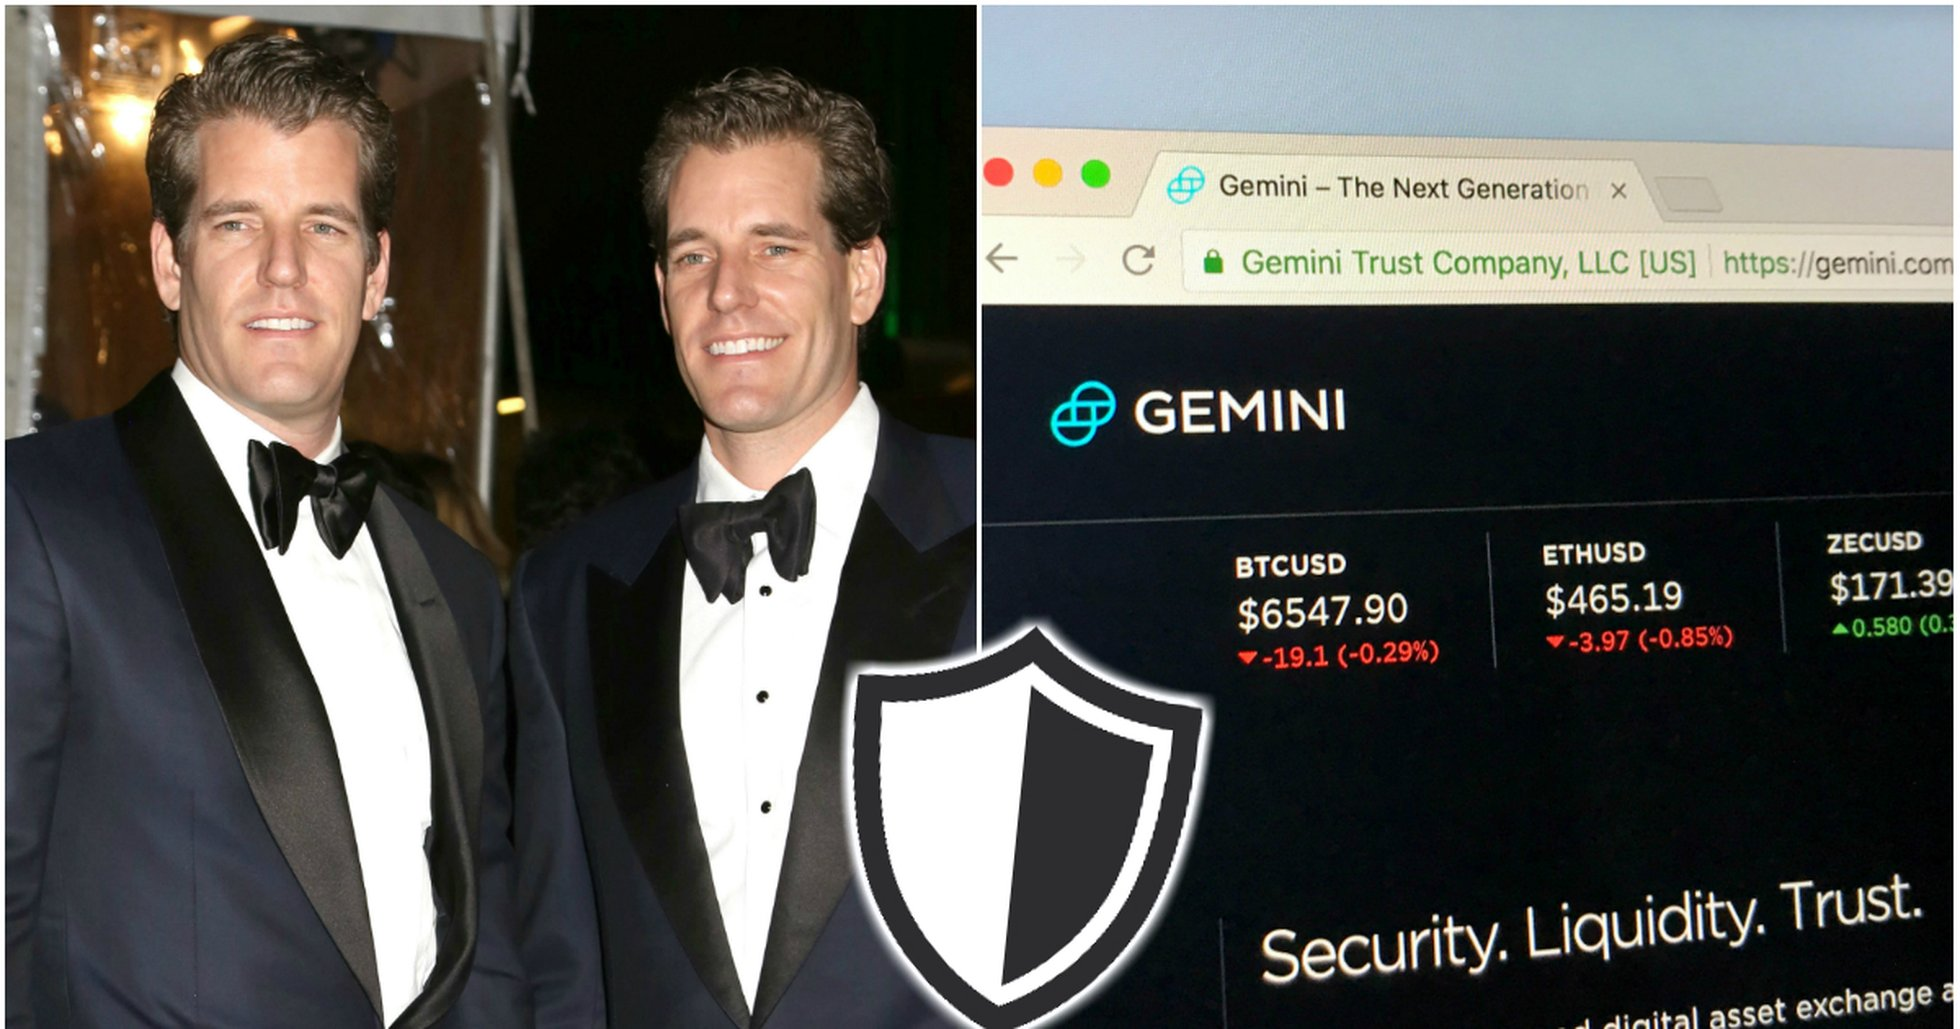 Winklevoss twins' crypto exchange offers insurance to its customers.